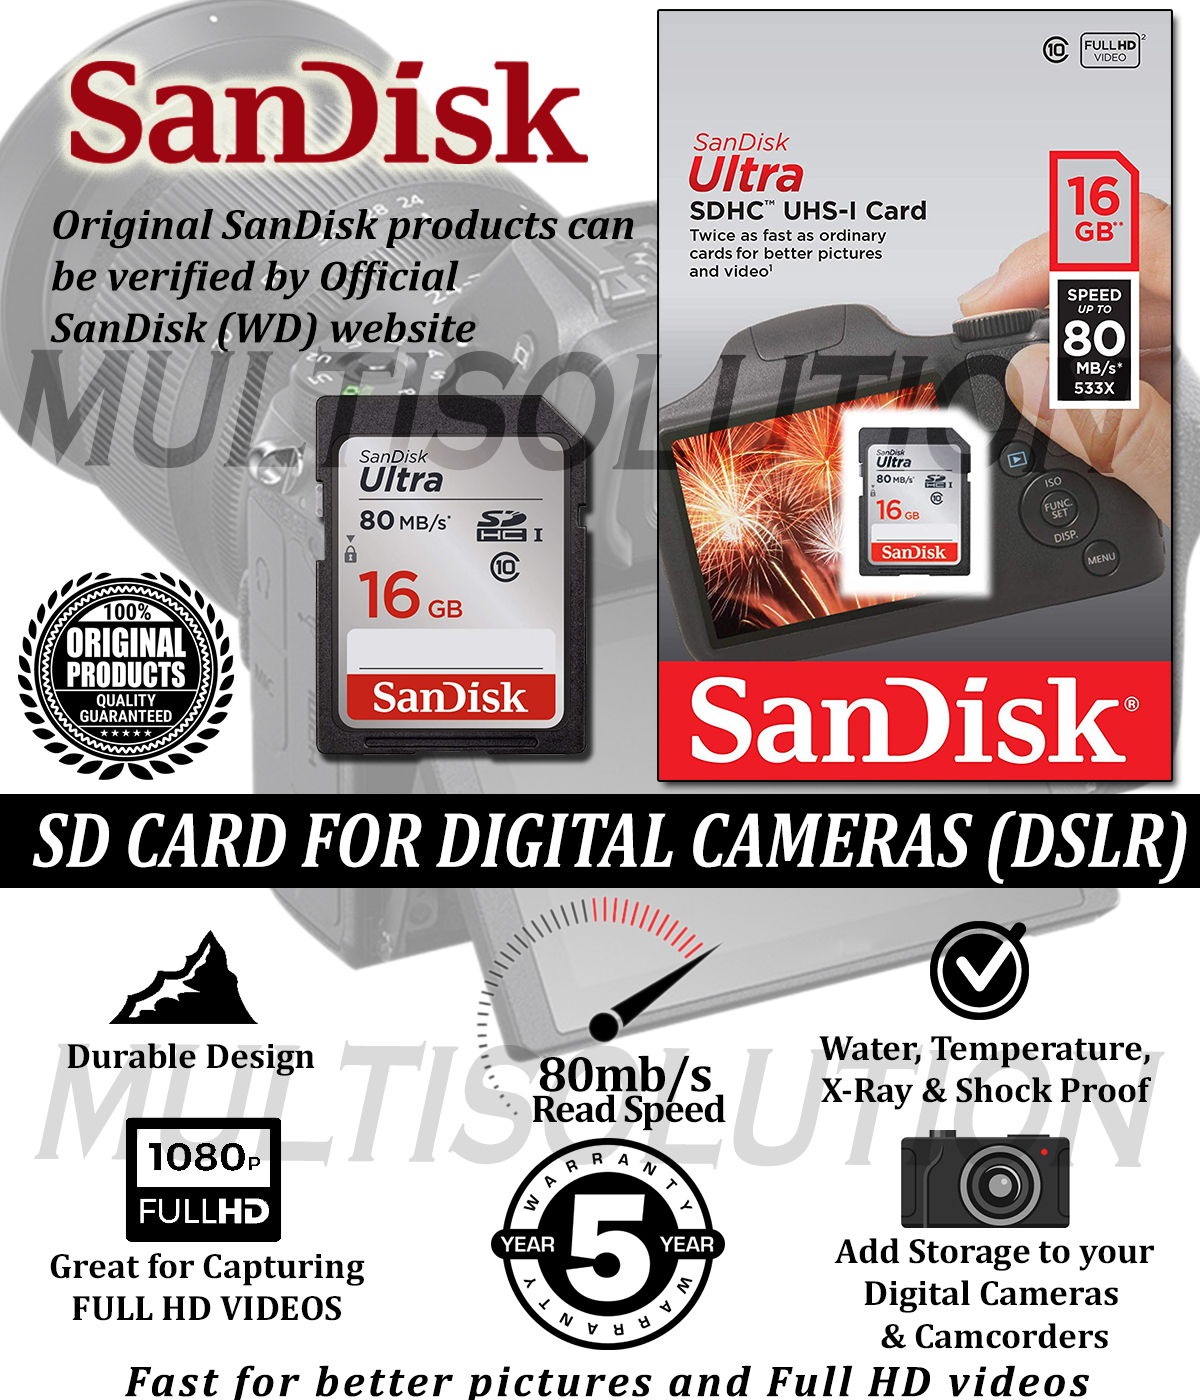 SanDisk 16GB Ultra SDHC Memory Card for Digital Cameras and Camcorders - 5 Years Warranty